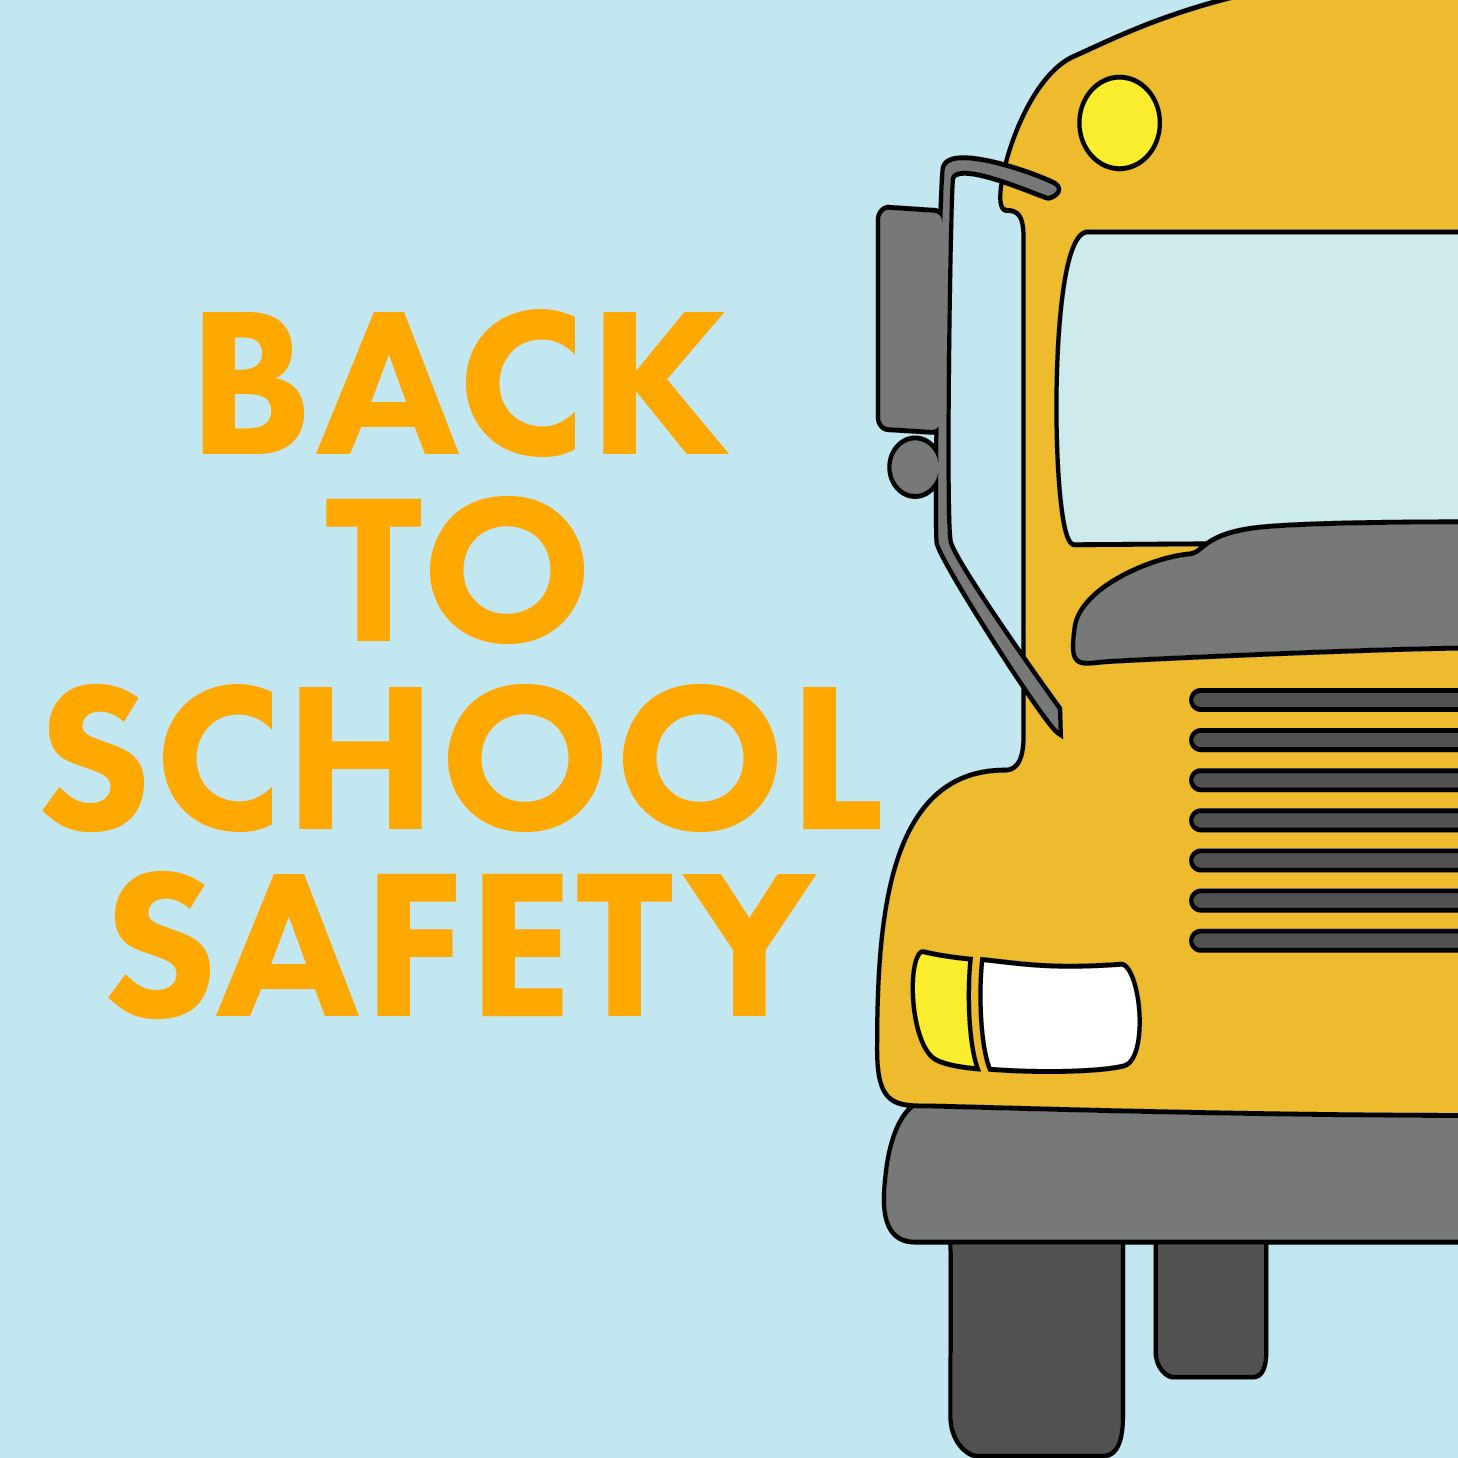 Back to SchoolSafety